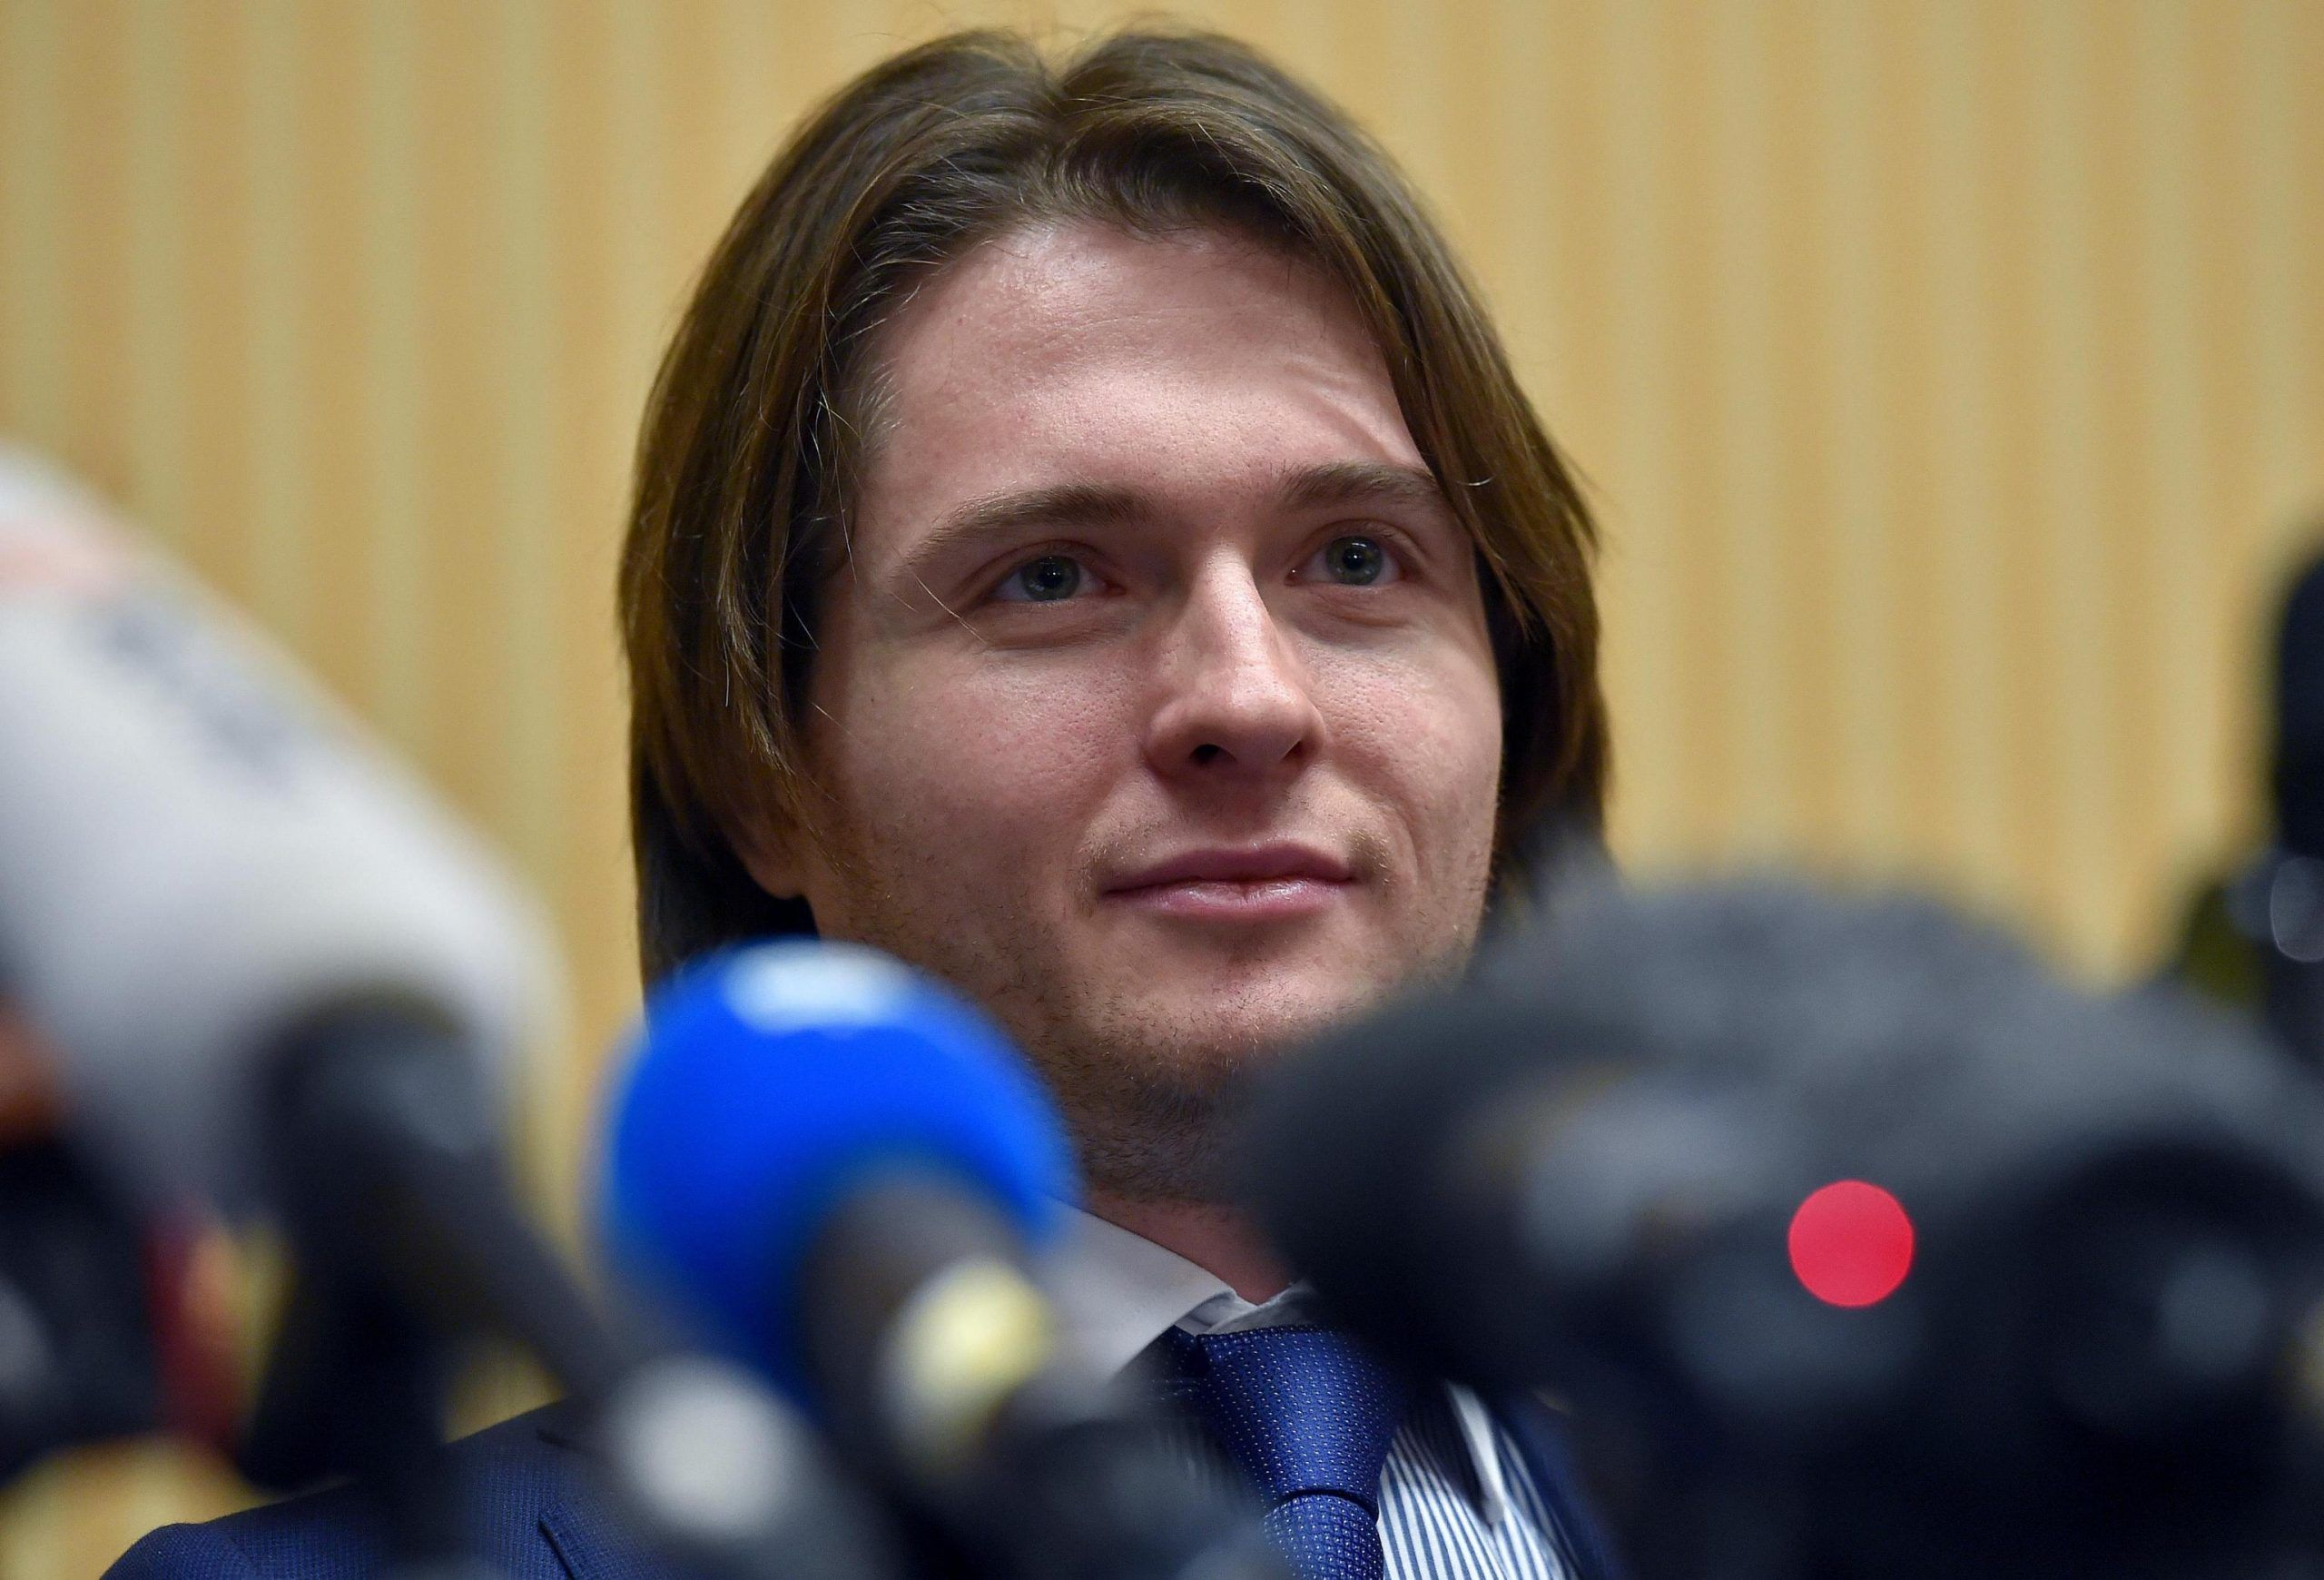 Meredith: Raffaele Sollecito during a press conference in Rome